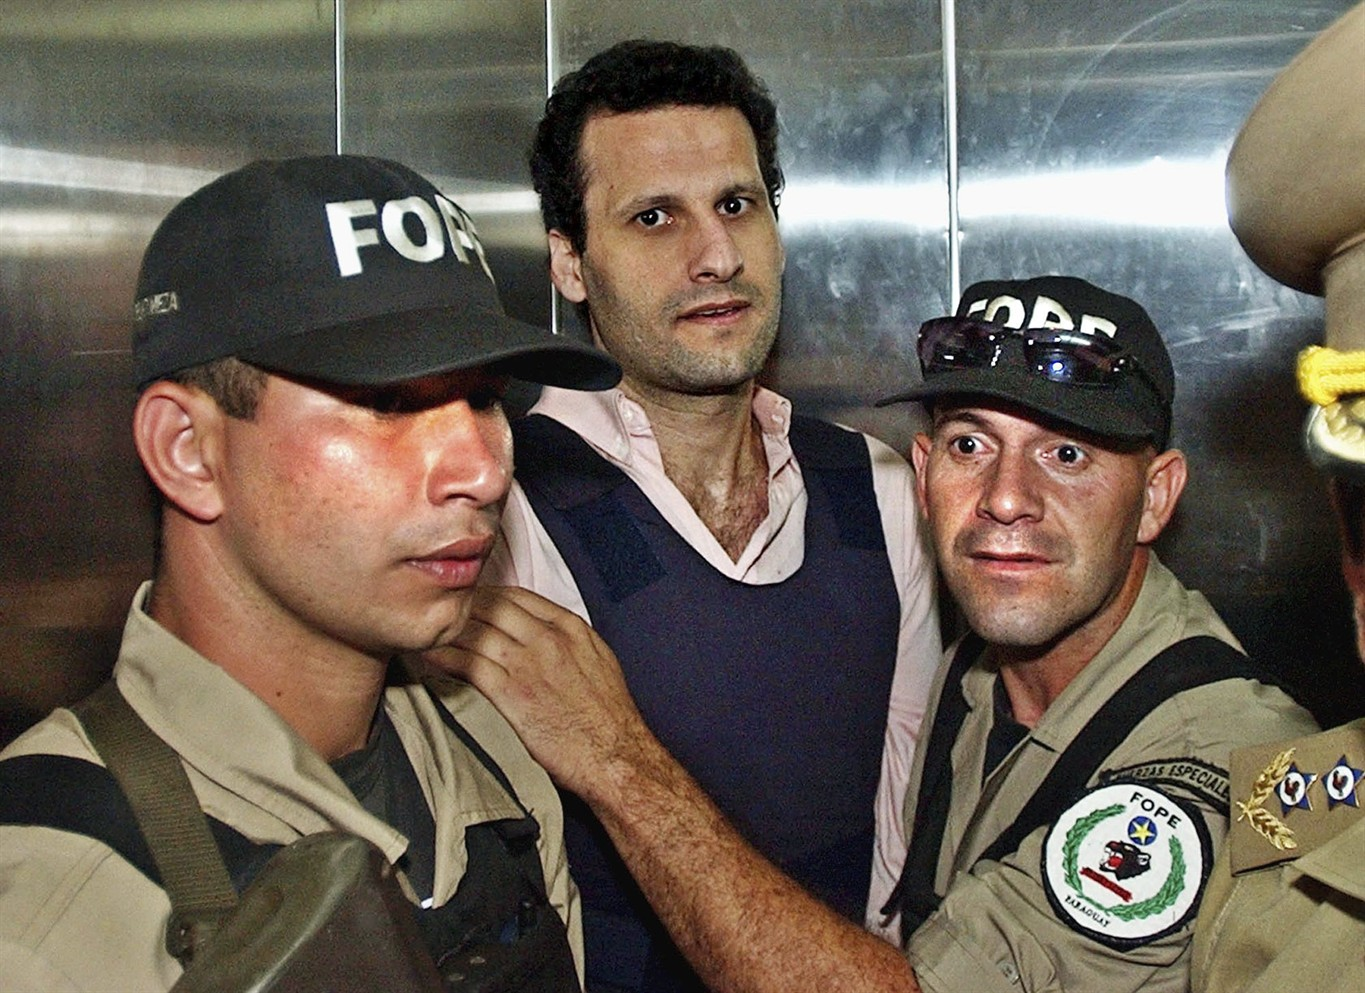 Brazilian police arrest fugitive linked to Hezbollah